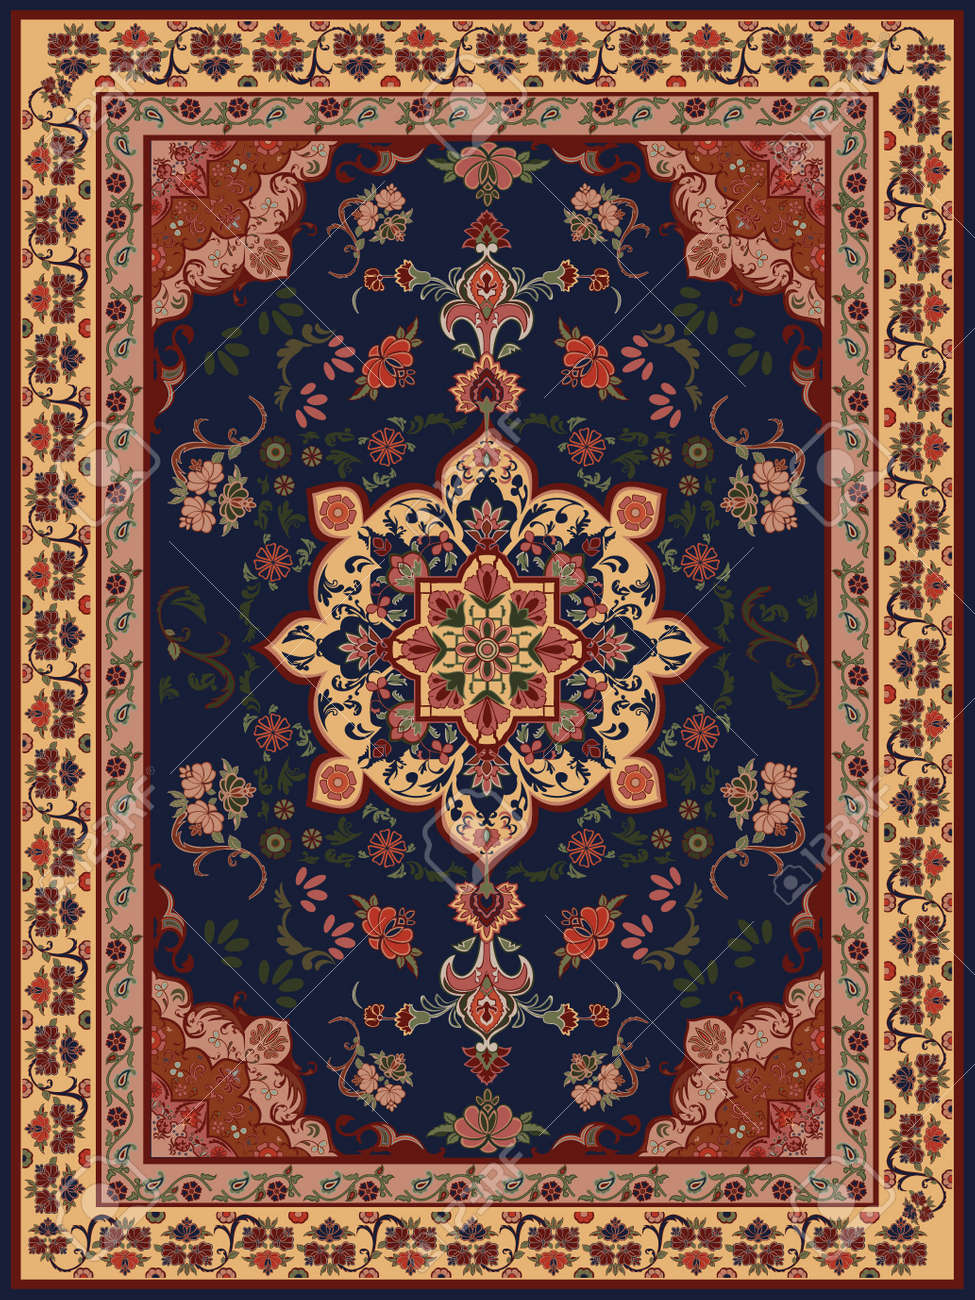 Carpet Design New Oriental Floral Carpet Design Royalty Free Cliparts Vectors And . Design Inspiration